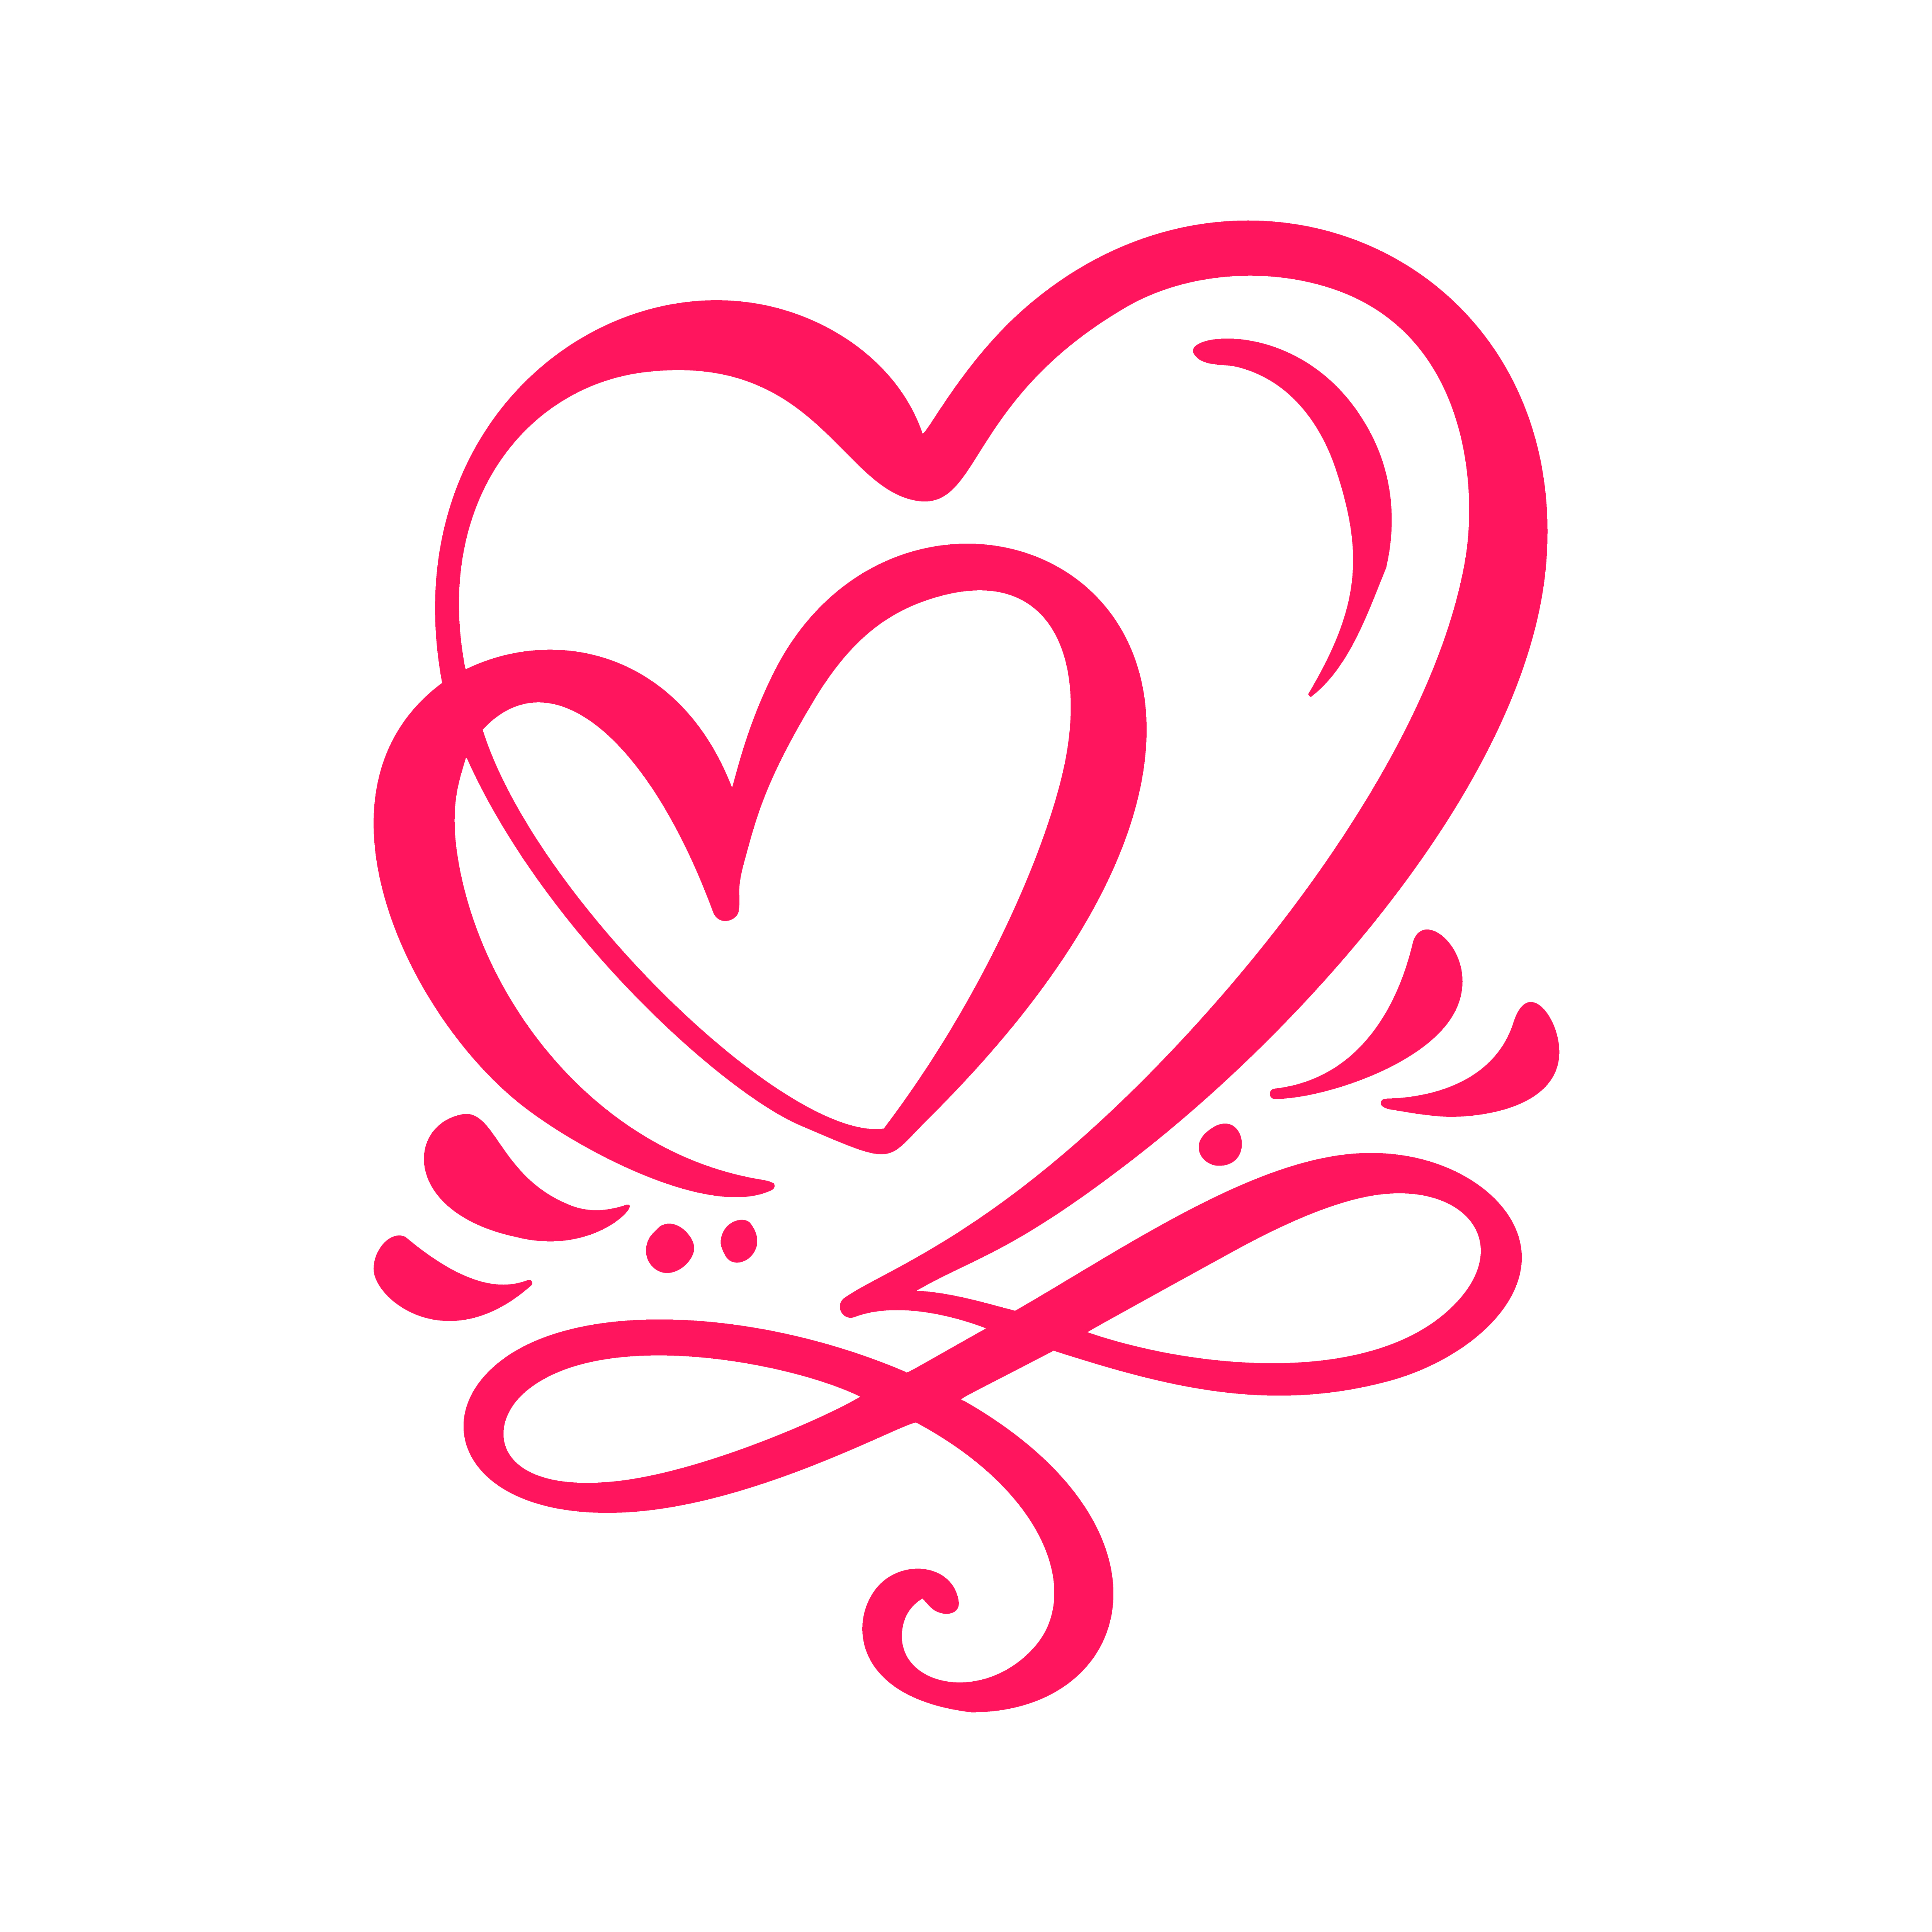 Two lover calligraphic hearts 375884 - Download Free ... (5001 x 5001 Pixel)